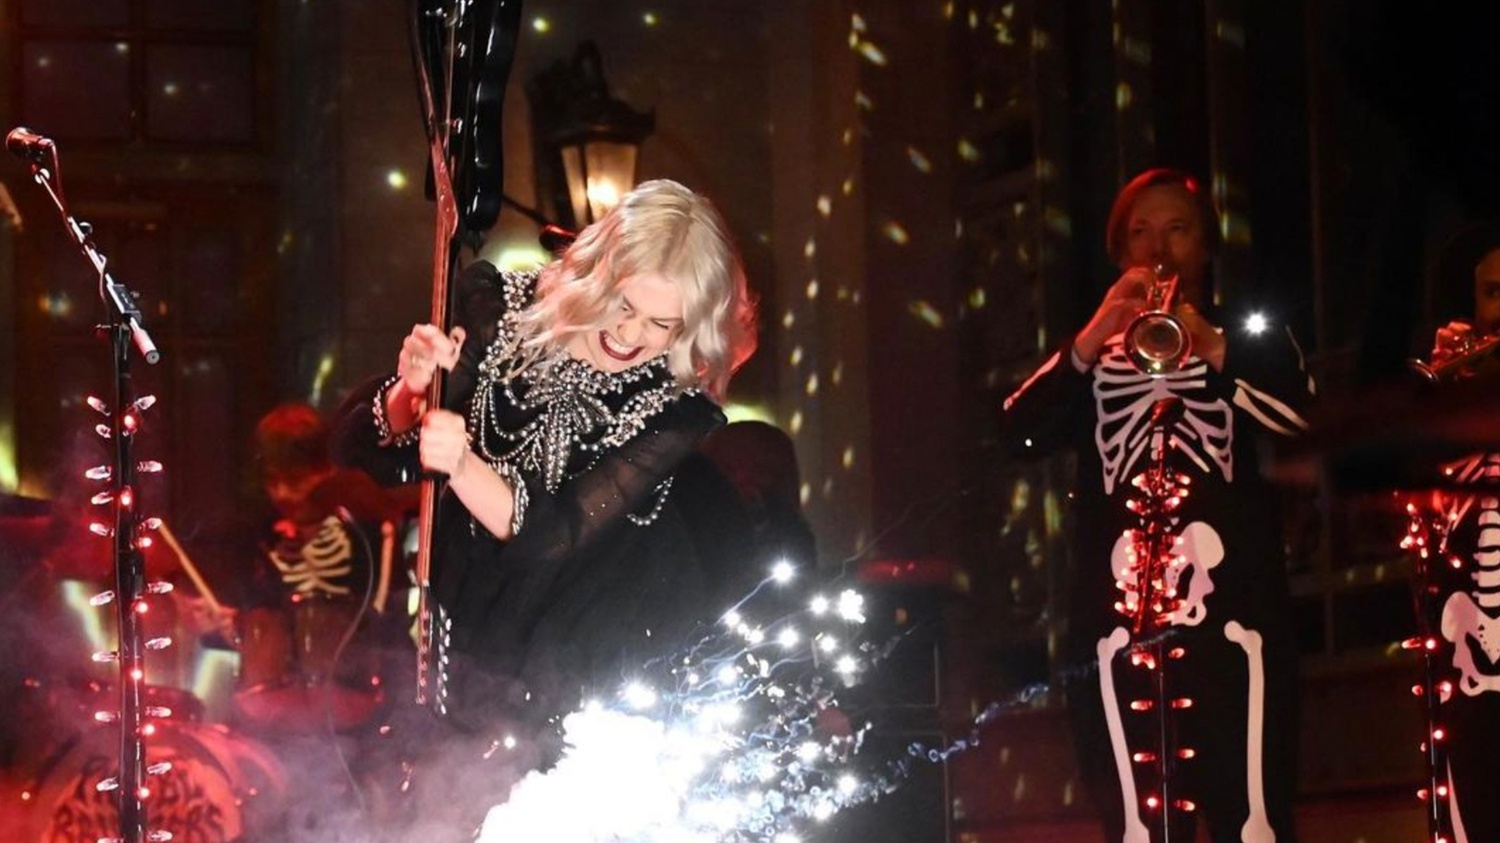 Phoebe Bridgers smashed her guitar at the end of her SNL performance.